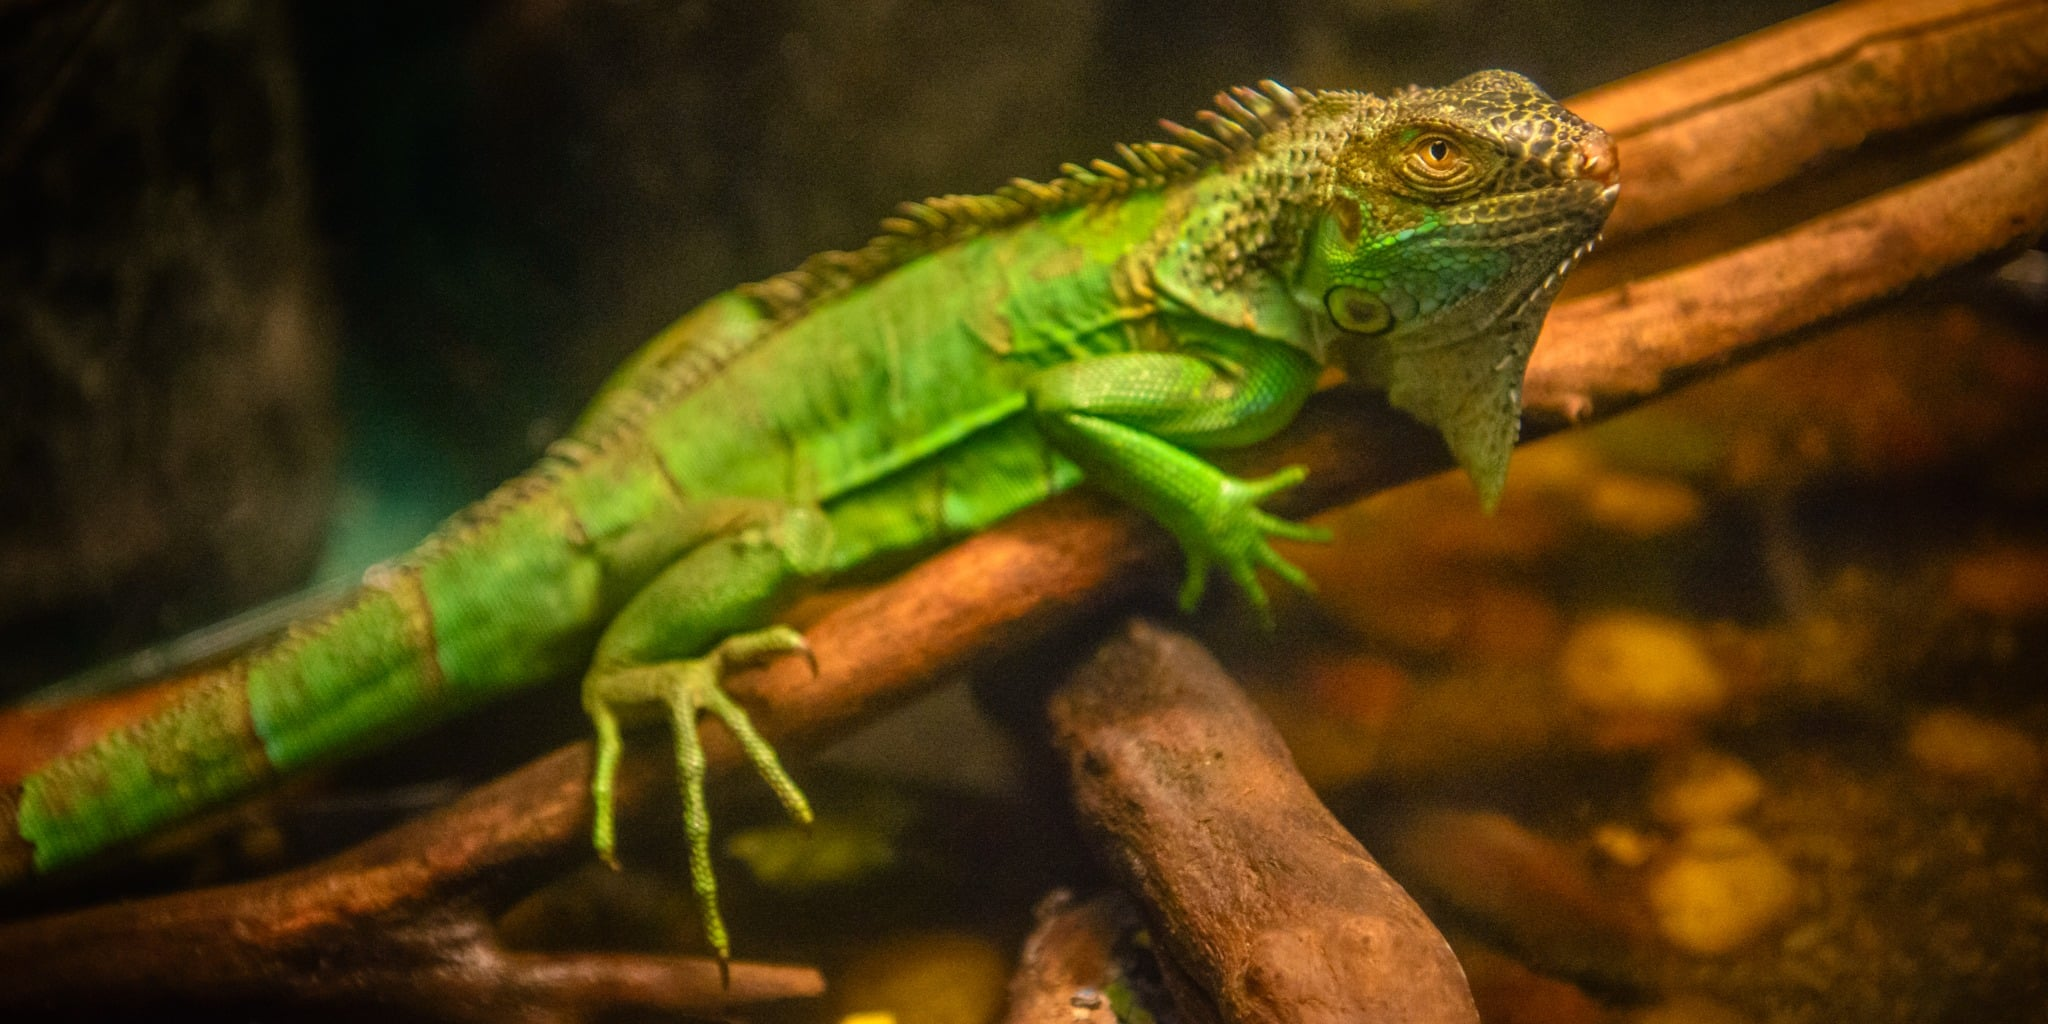 This young Iguana is not shy about looking at the camera. This rescued Iguana is living at Colorado Gators near Hooper, Colorado.